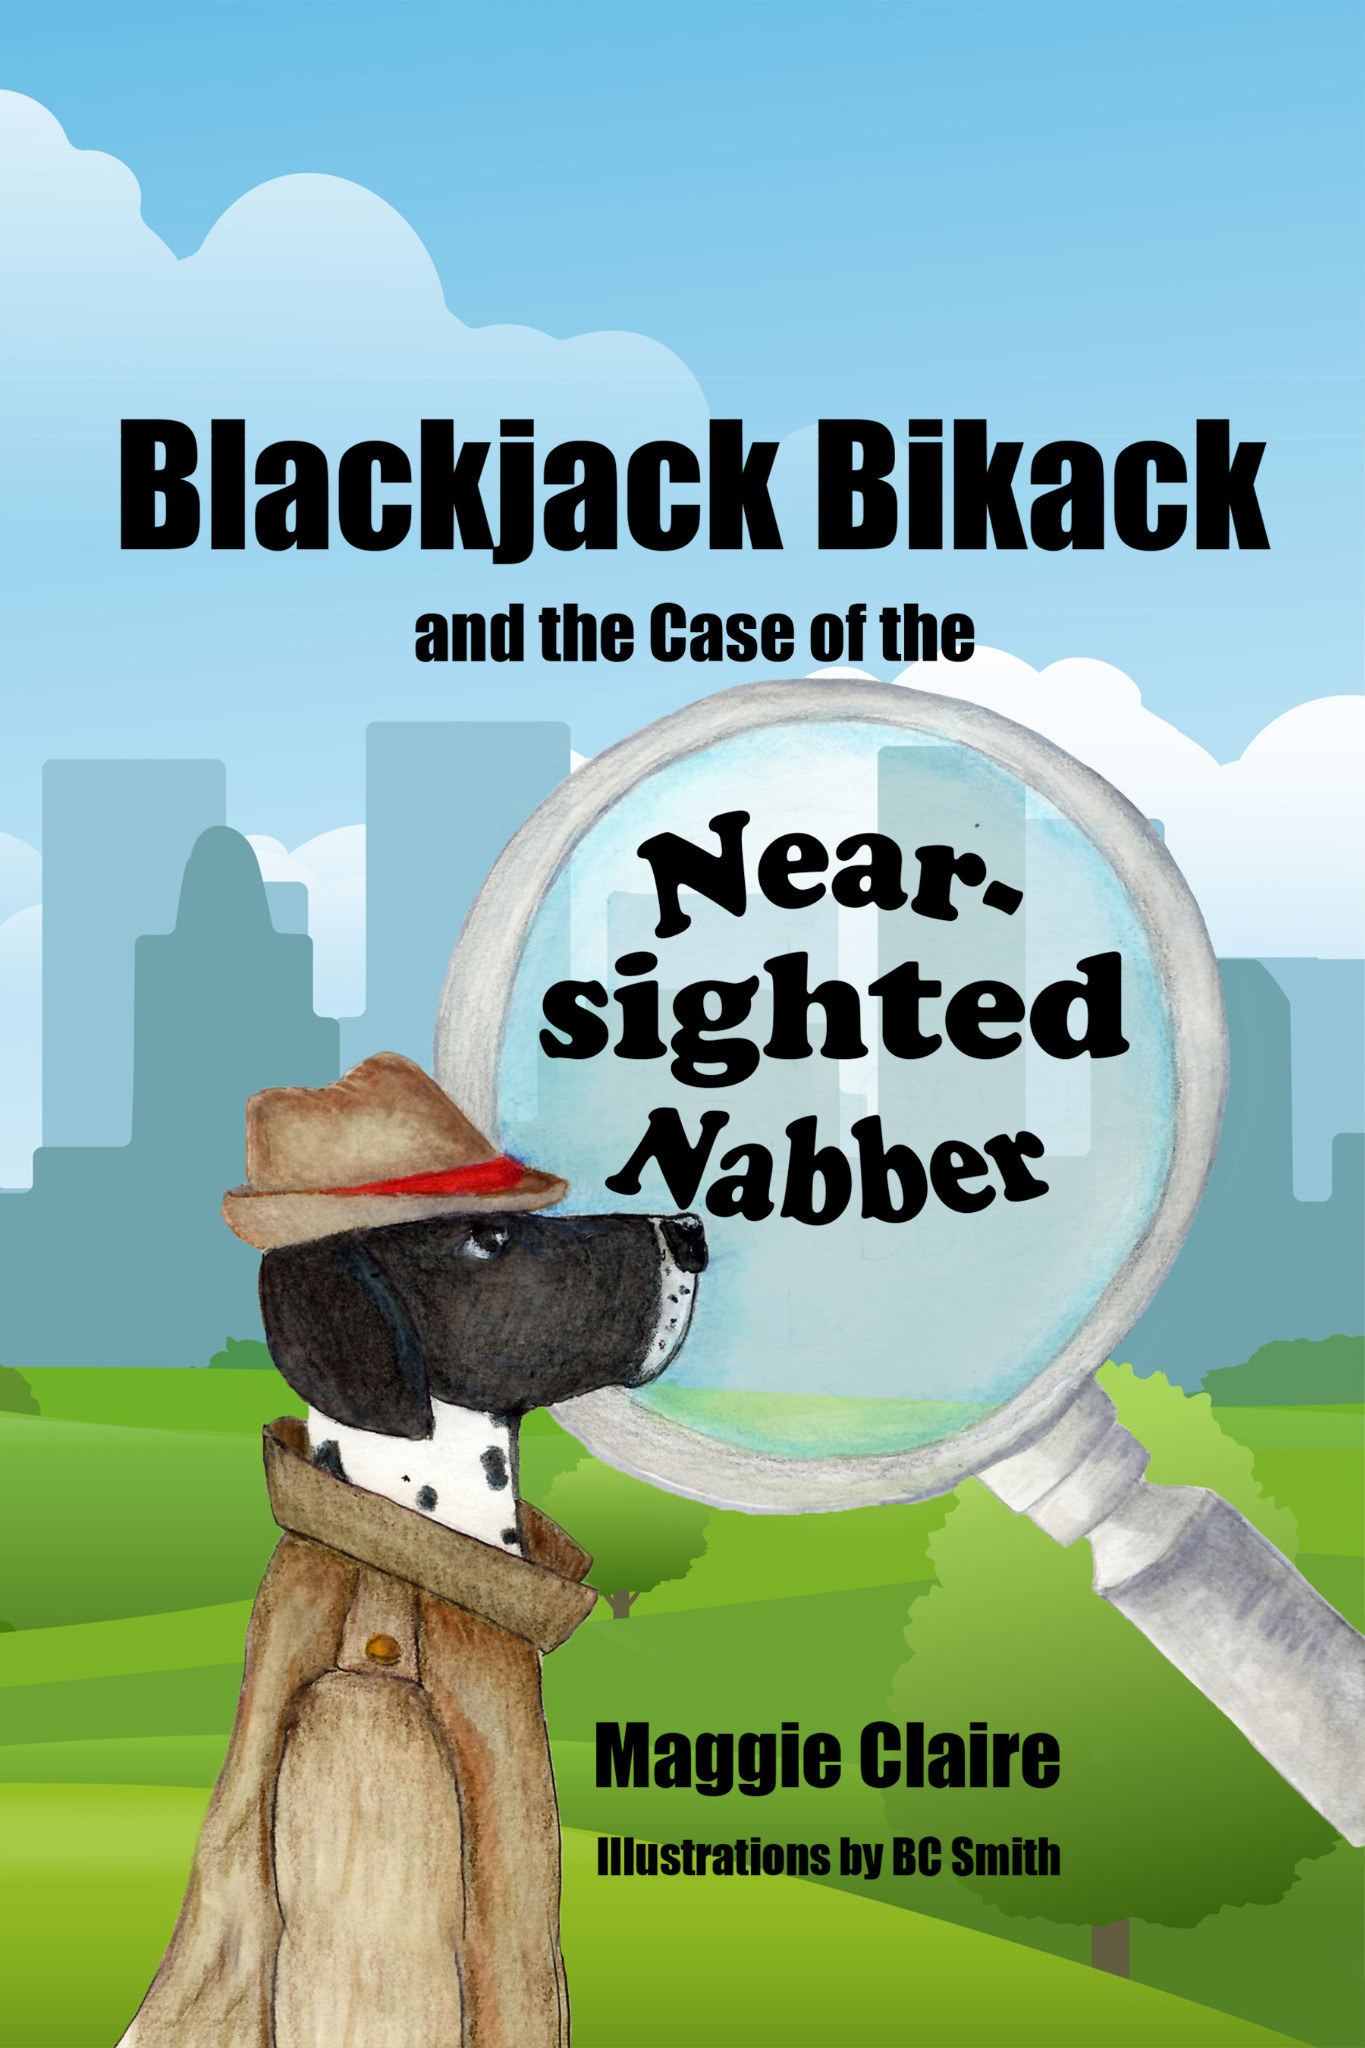 Blackjack Bikack and the Case of the Near-Sighted Nabber